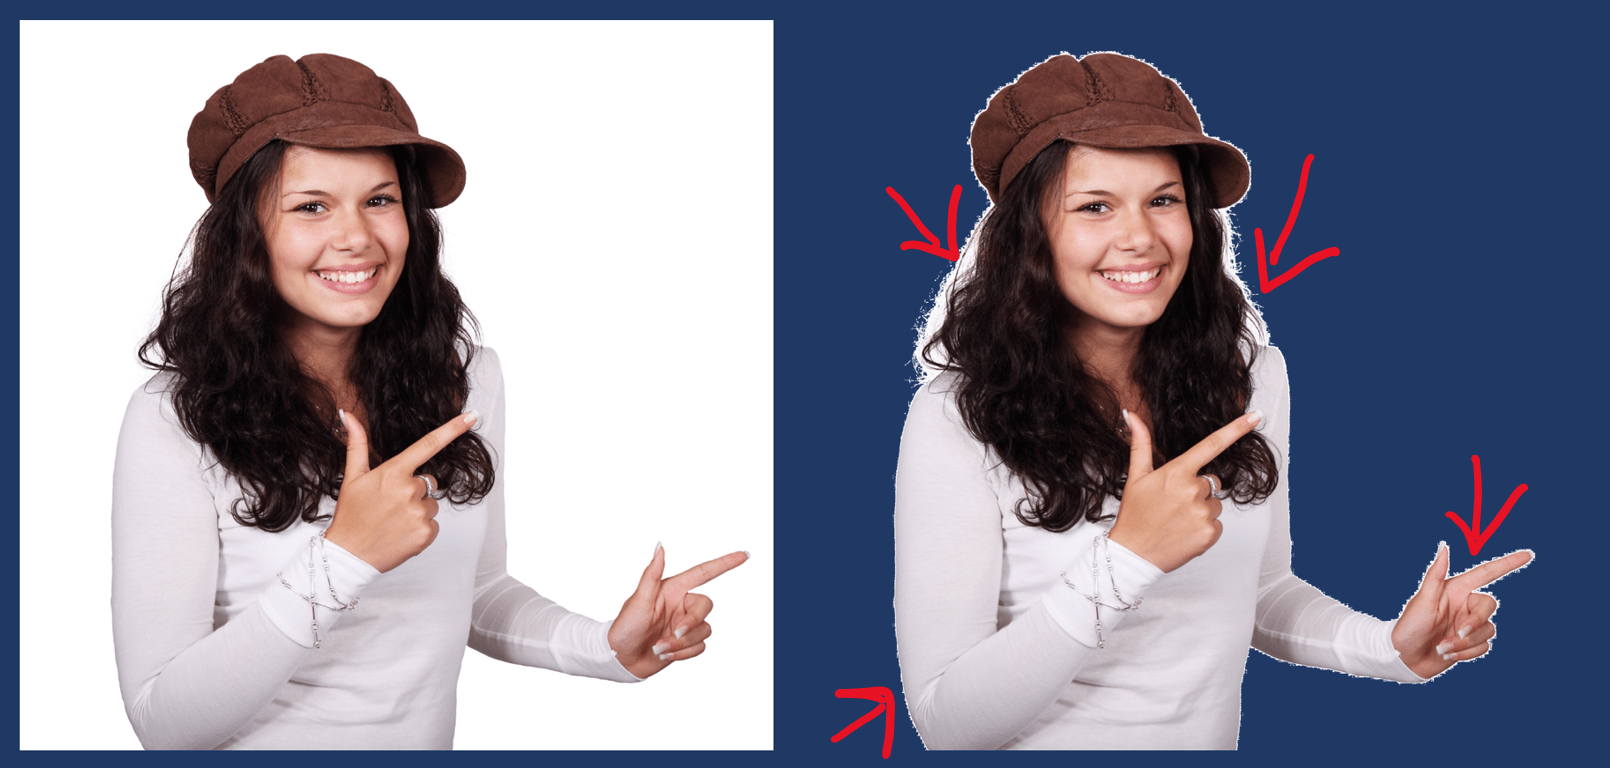 Removing a white background doesn't work well with minute details like strands of hair